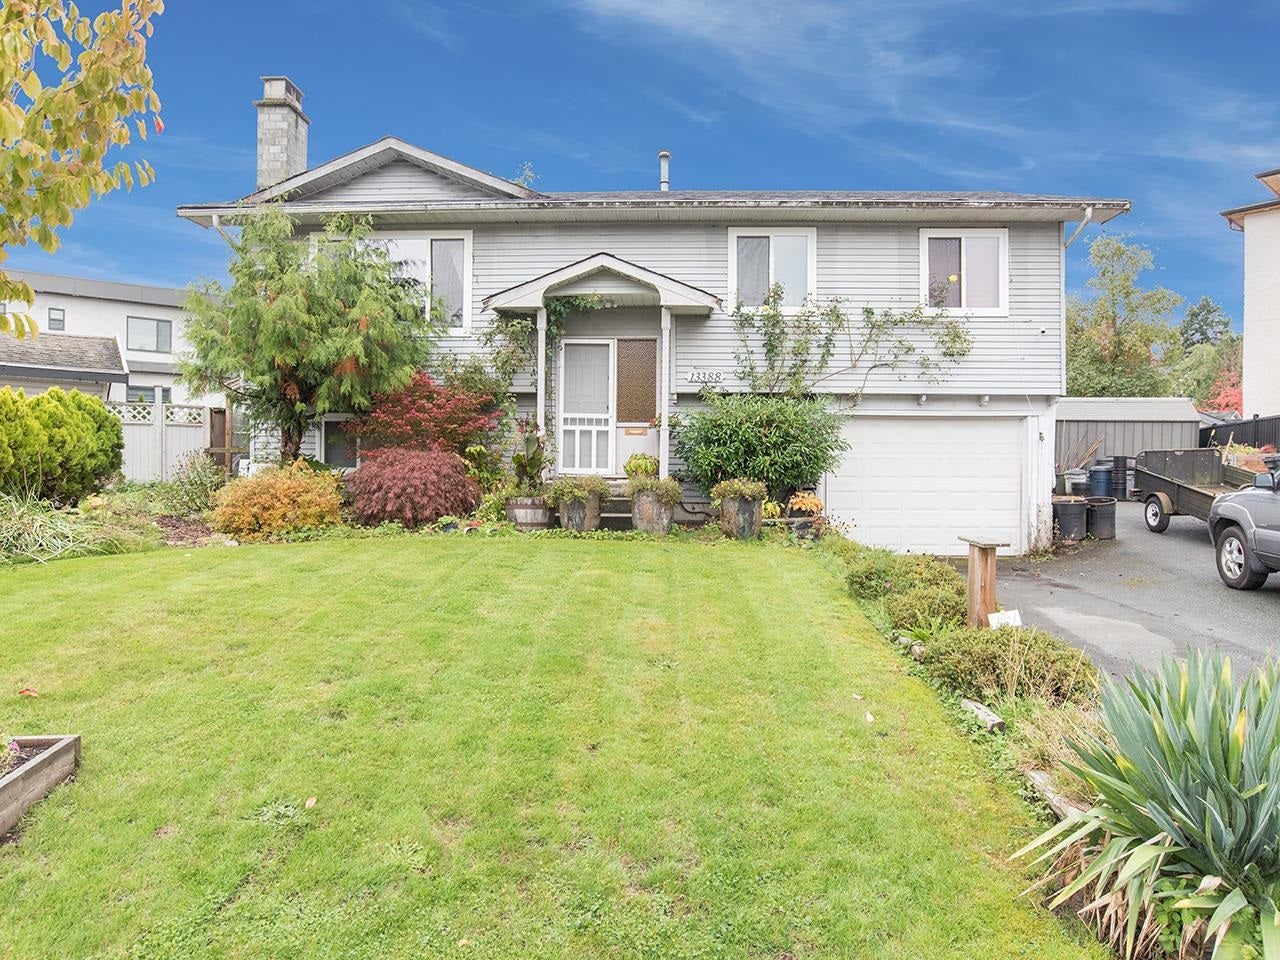 13388 CYPRESS PLACE - Queen Mary Park Surrey House/Single Family for sale, 4 Bedrooms (R2624139) - #1